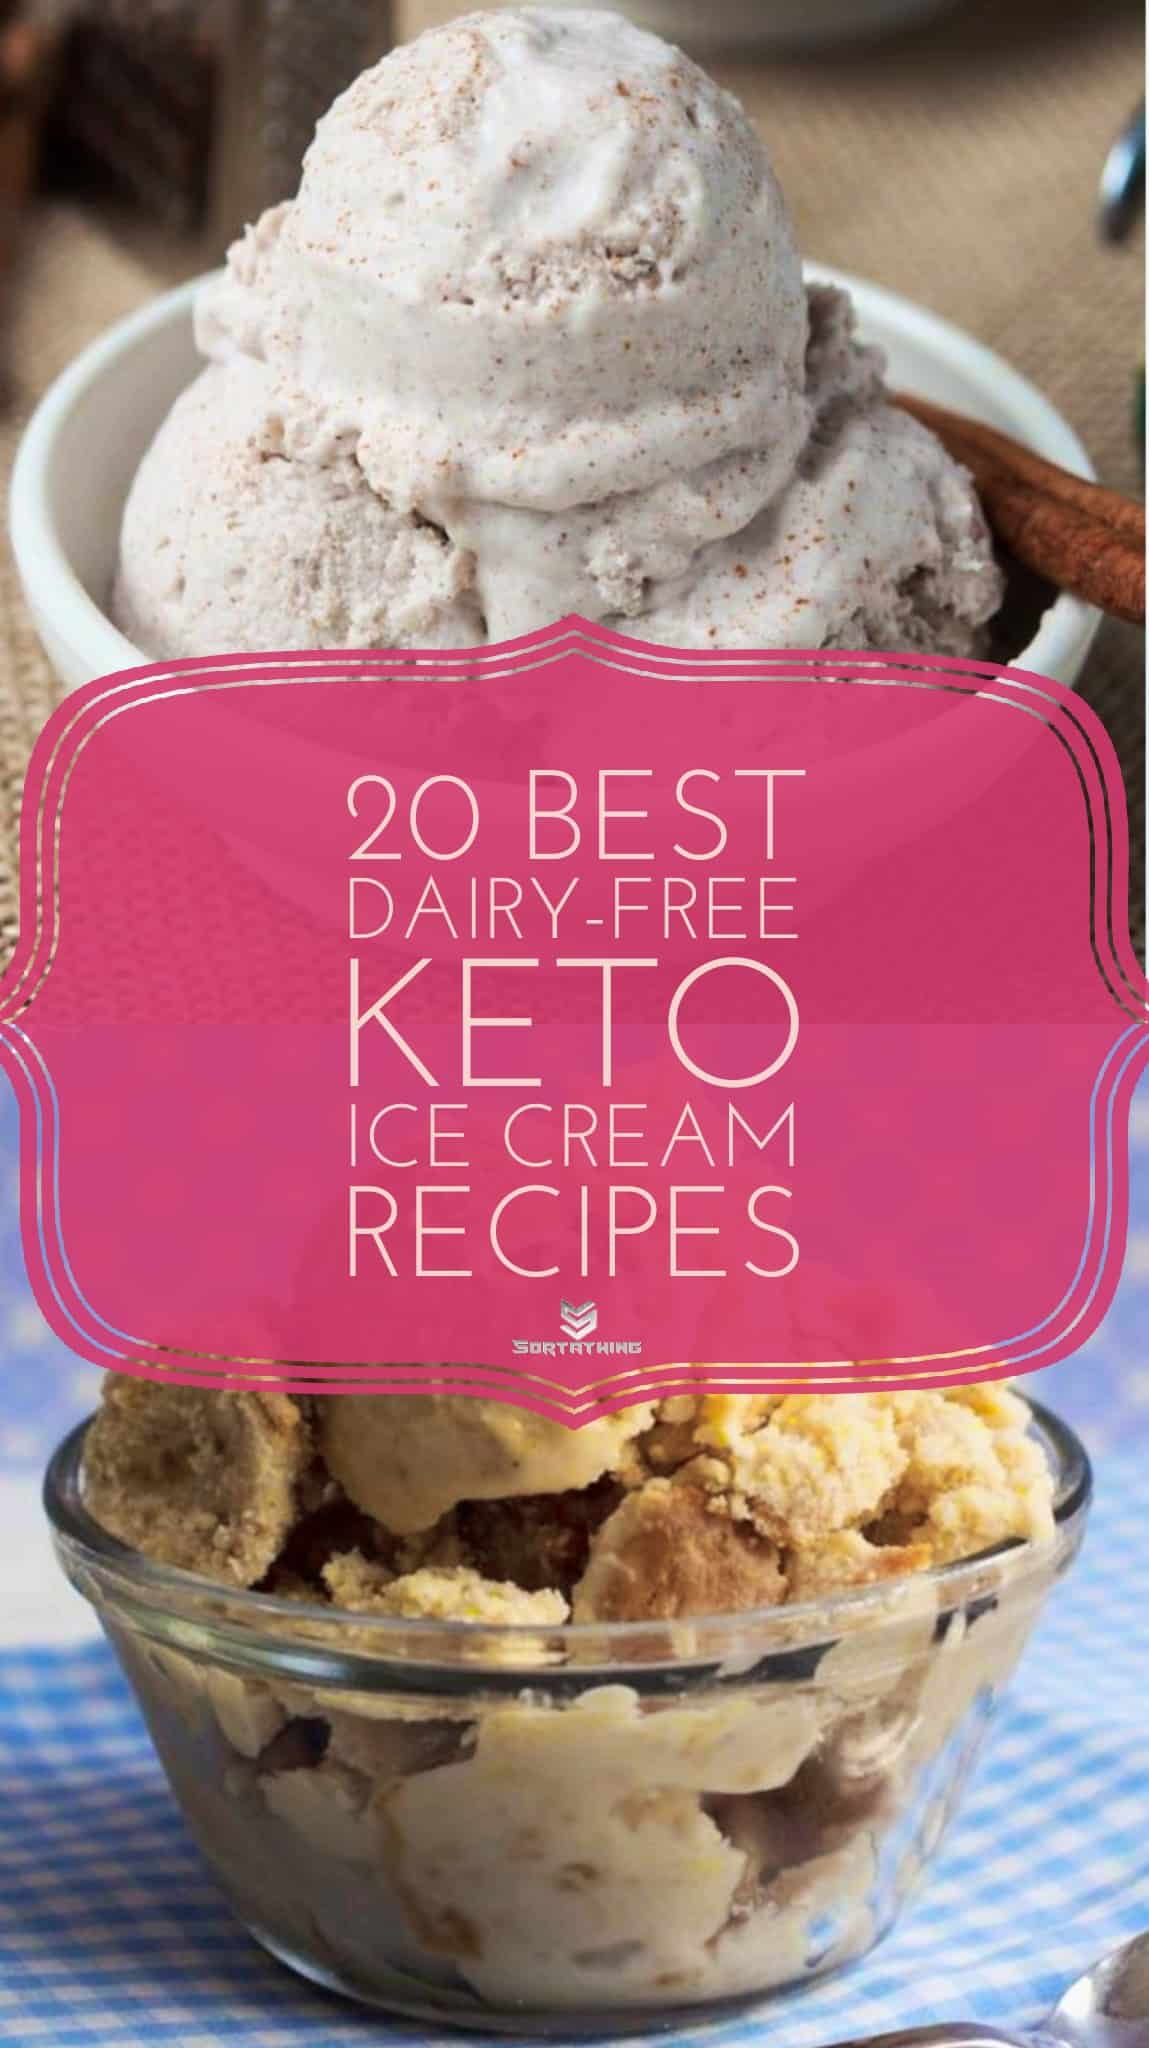 Keto Dairy-Free Cinnamon Ice Cream and Peanut Butter Swirl Ice Cream